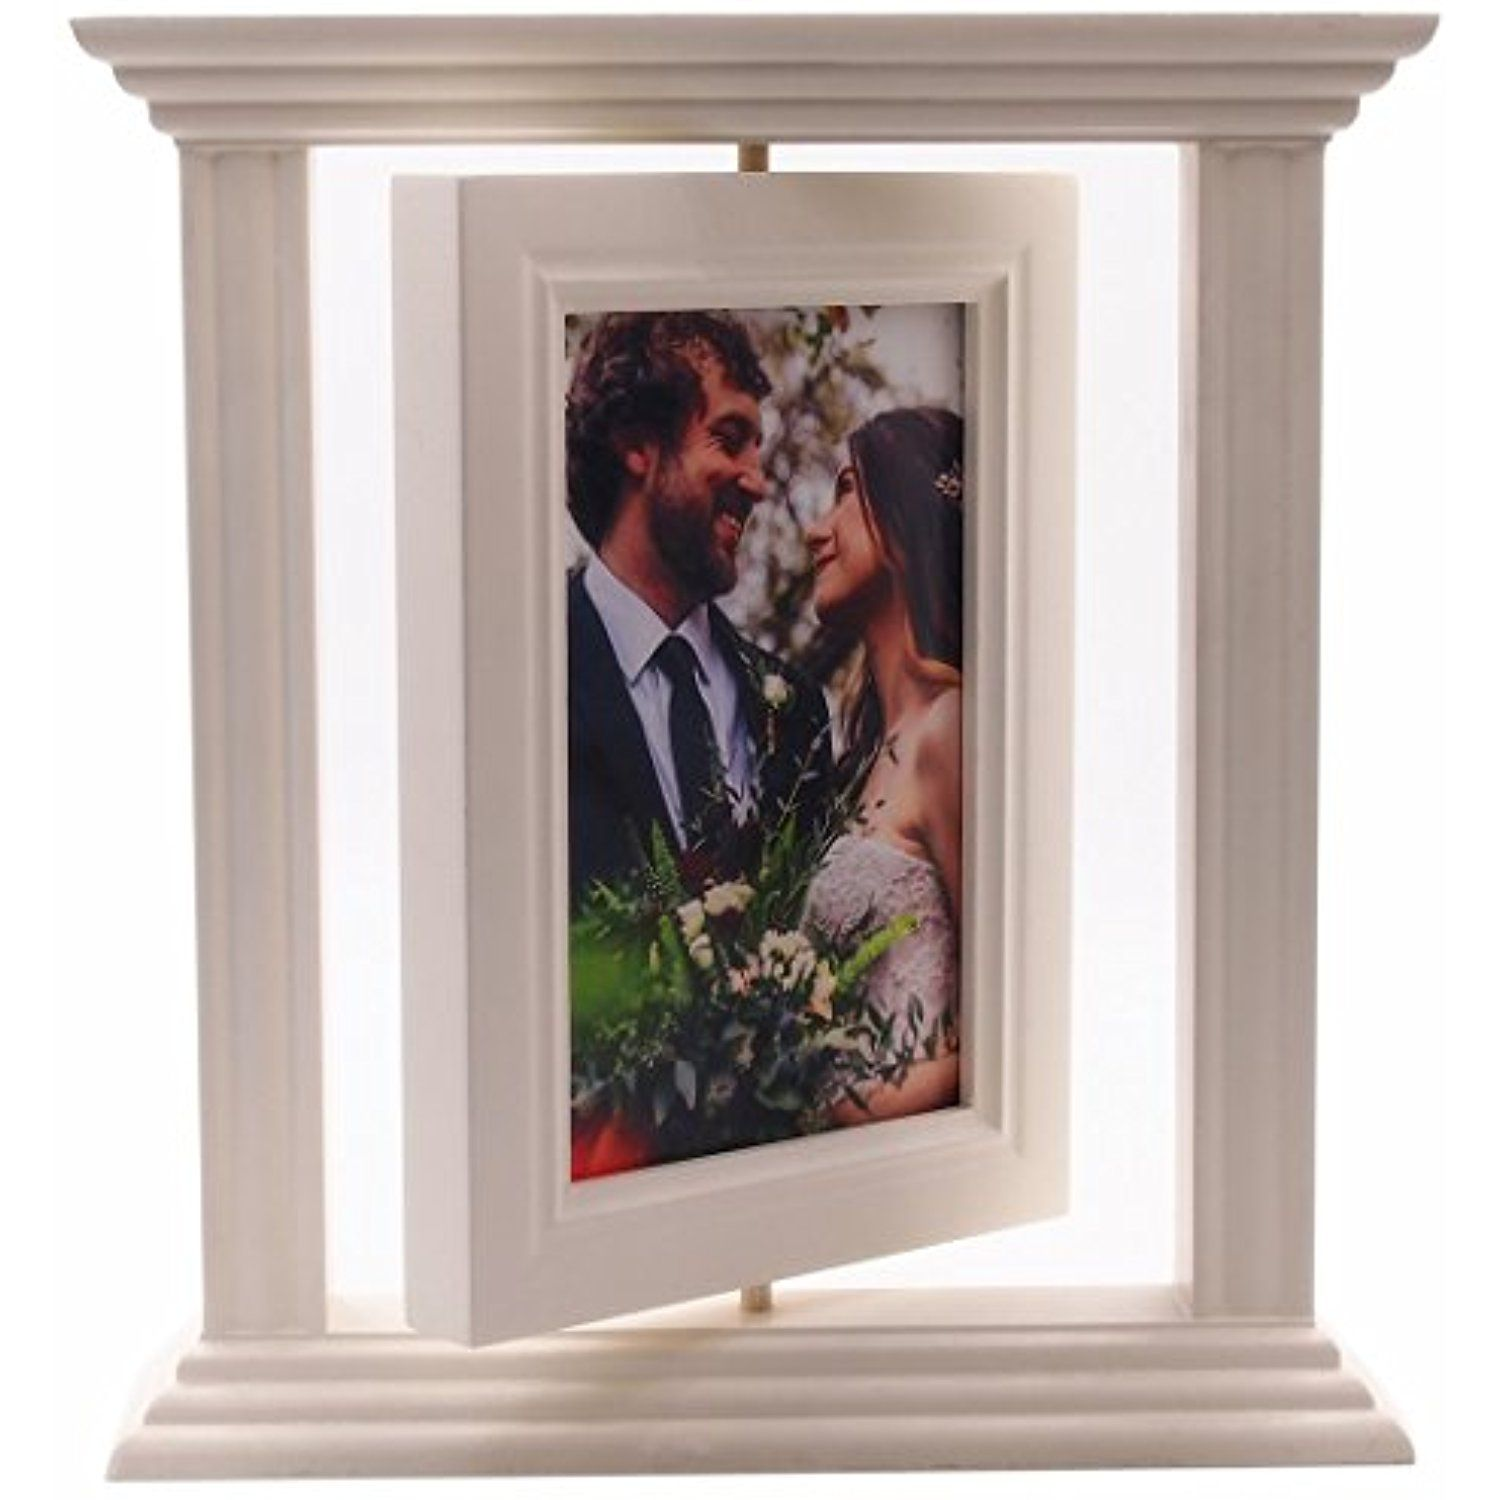 Yomee 2 Sided Rotatable White Picture Frame With Glass Front Solid